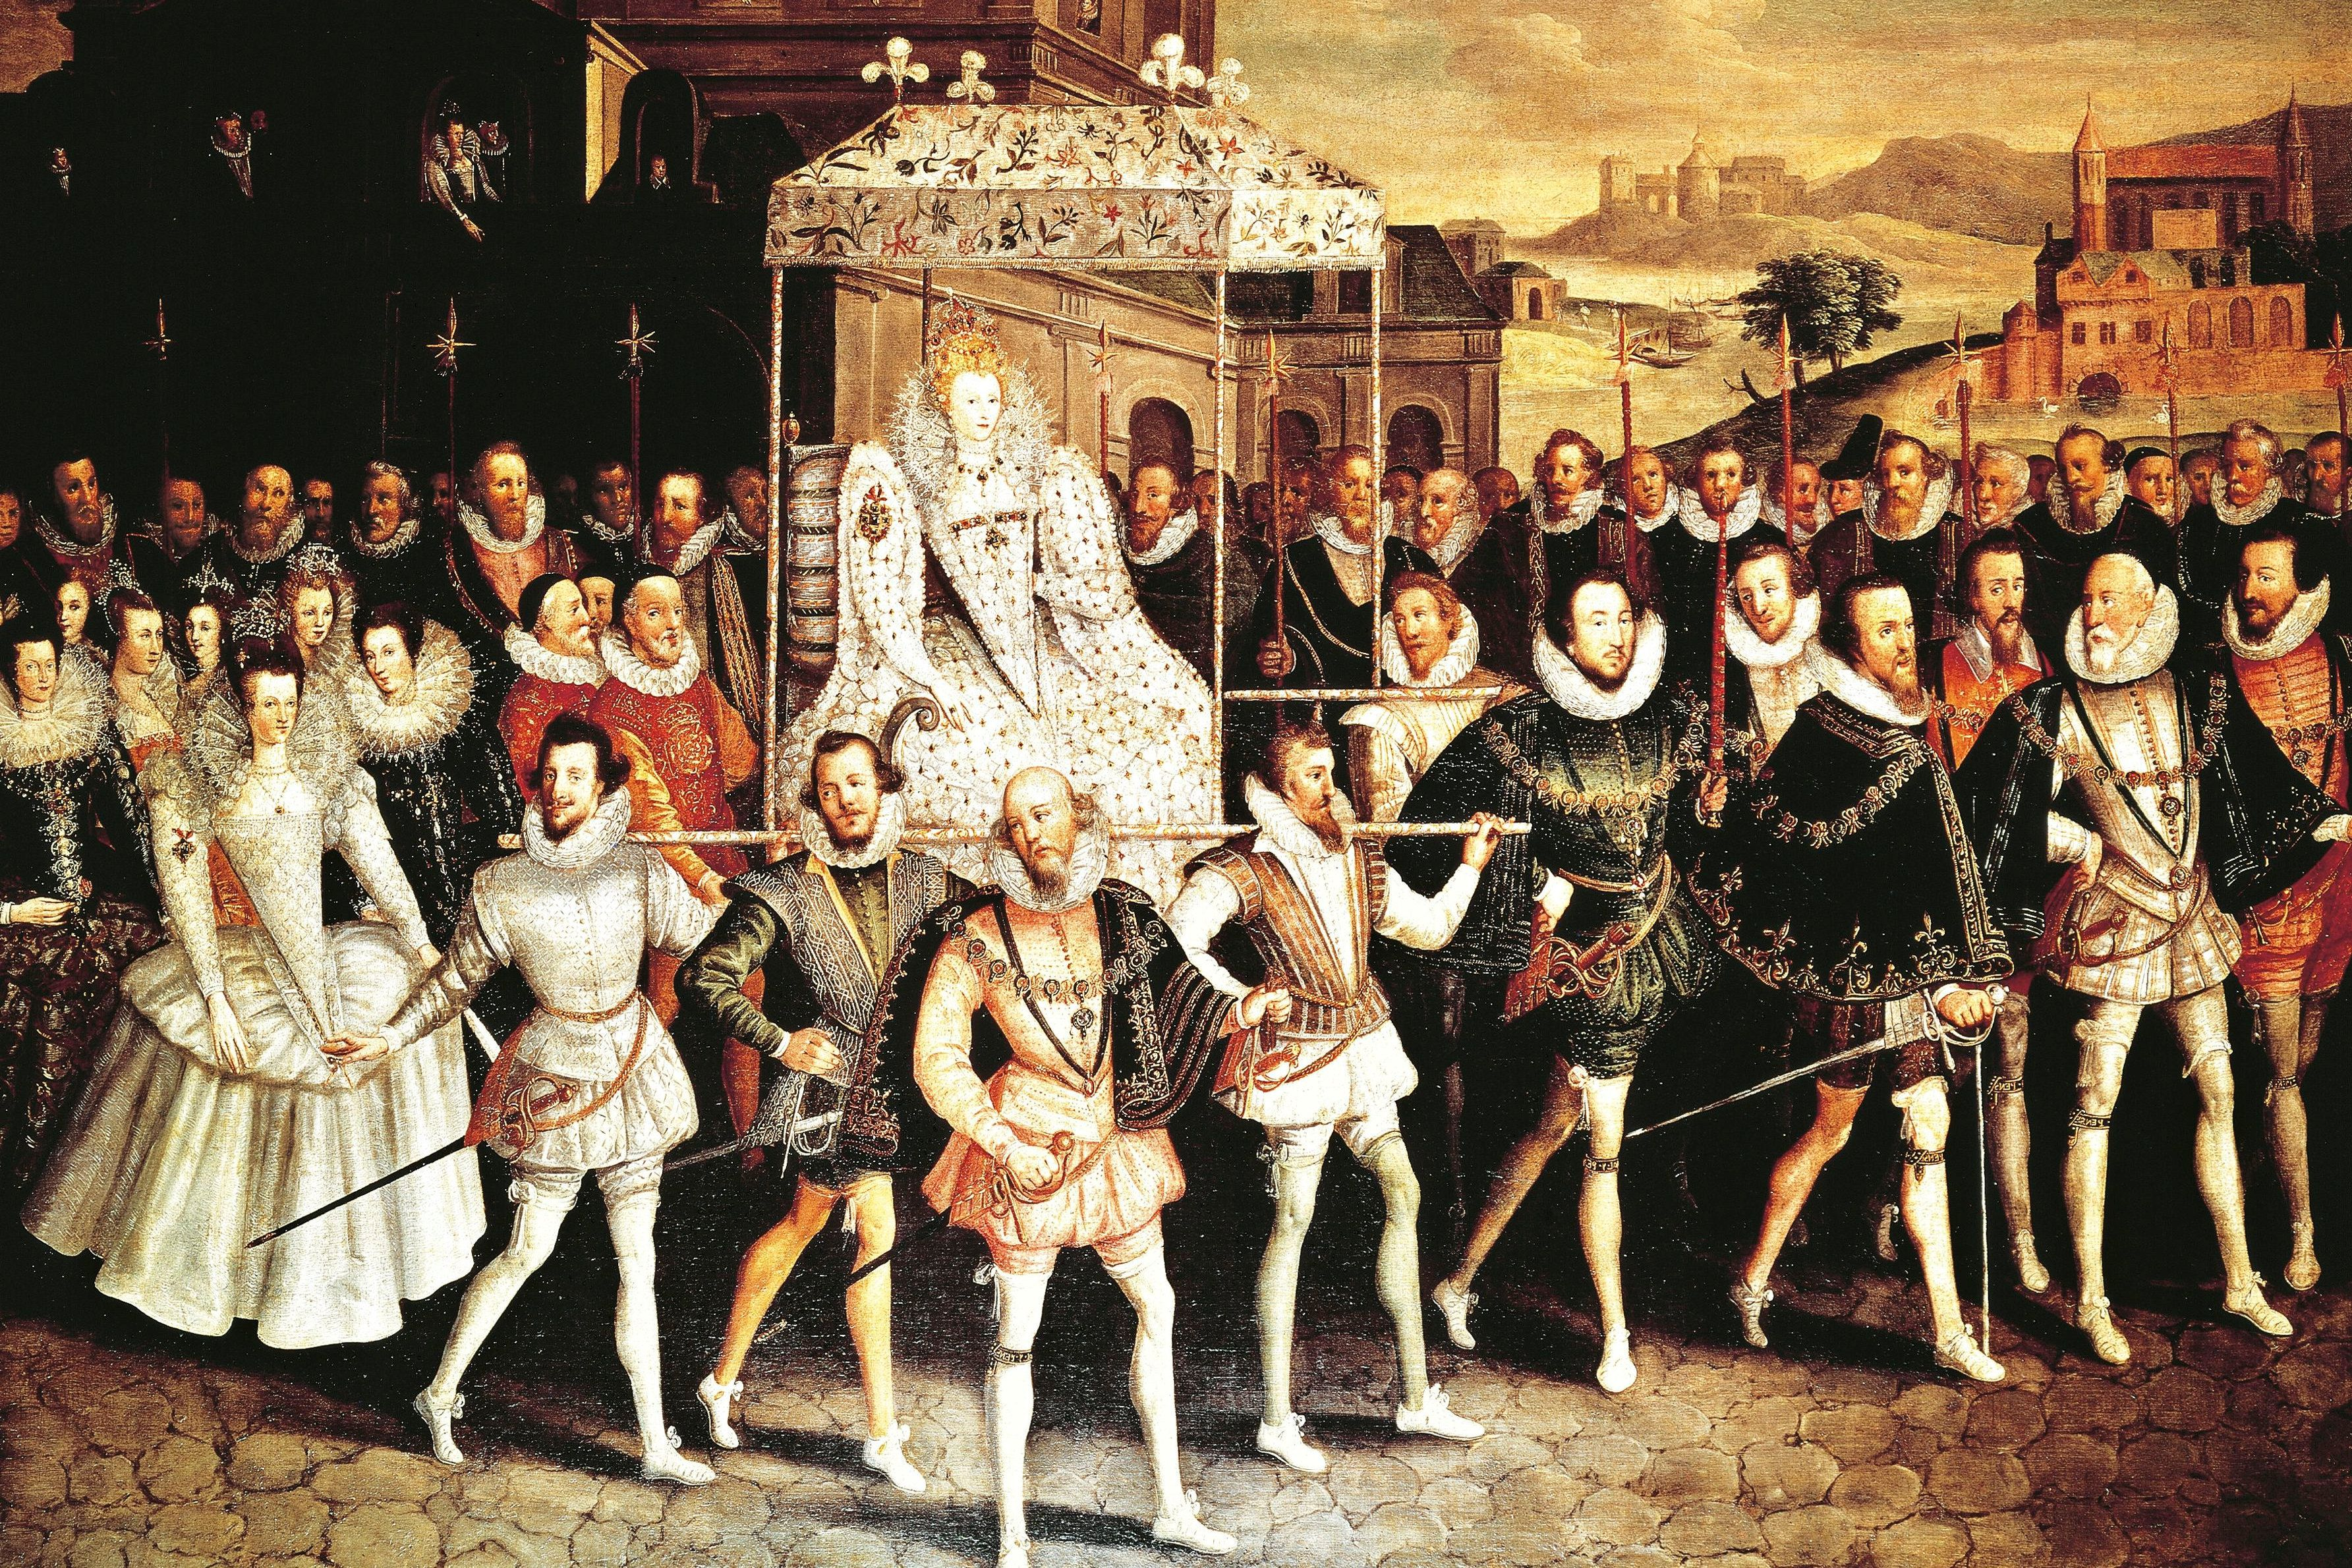 Queen Elizabeth I of England and Ireland in procession to Blackfriars in 1600, painted by Robert the Elder